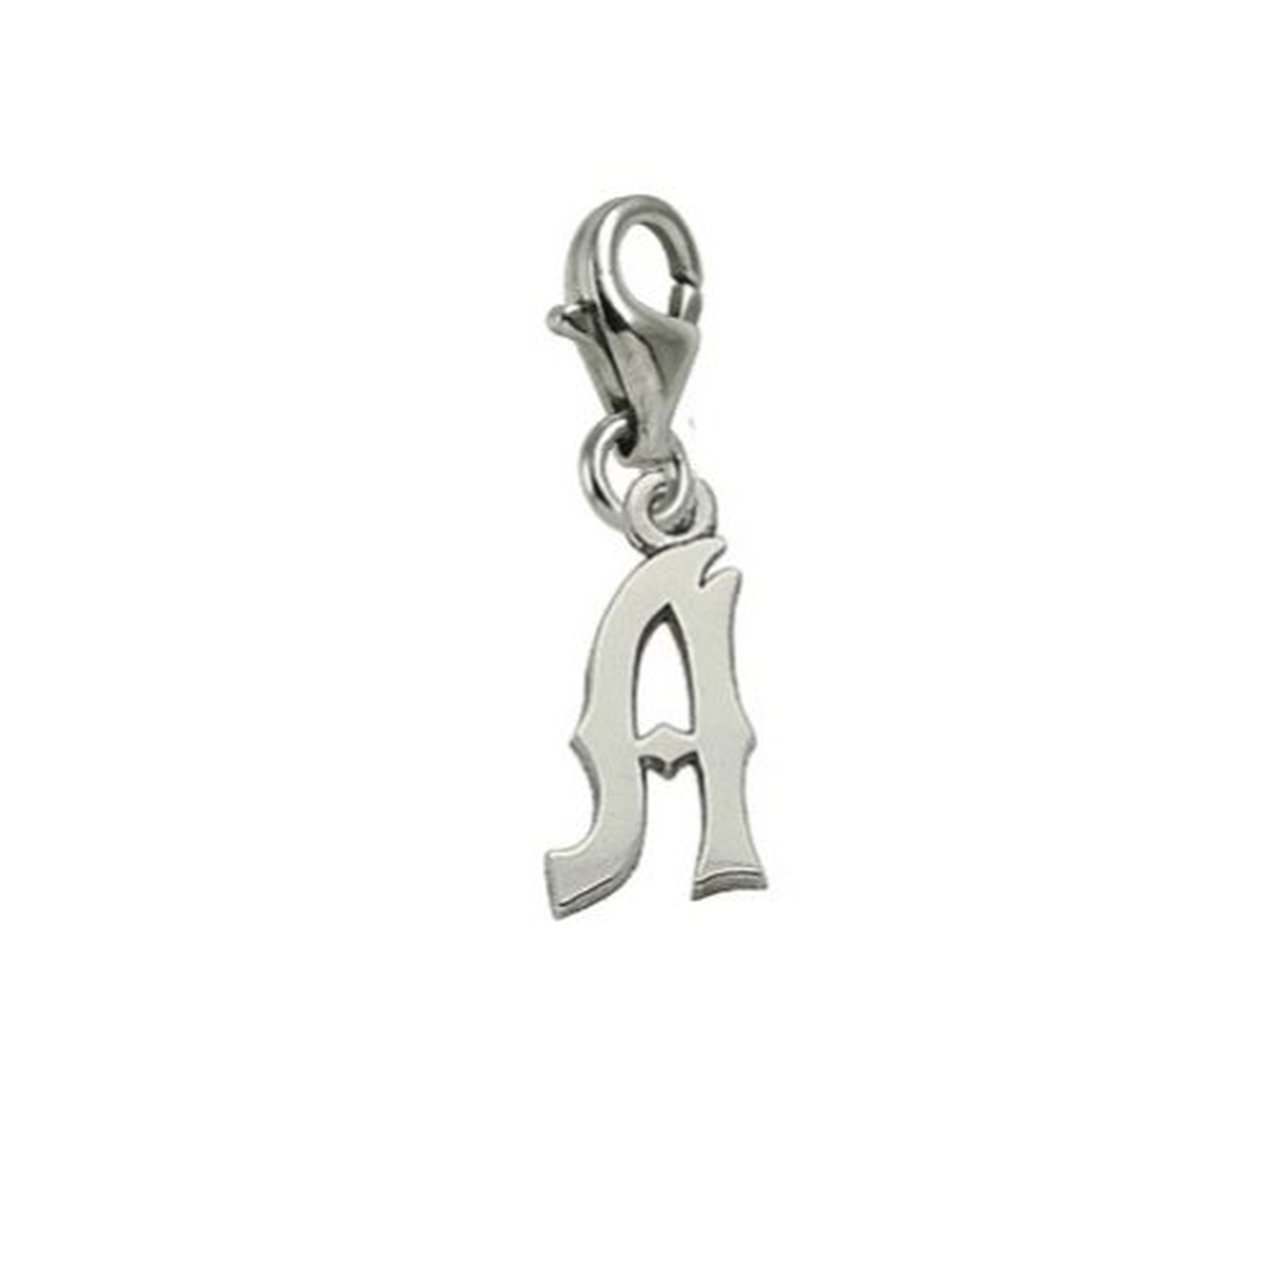 Initial A Charm With Lobster Claw Clasp Charms for Bracelets and Necklaces